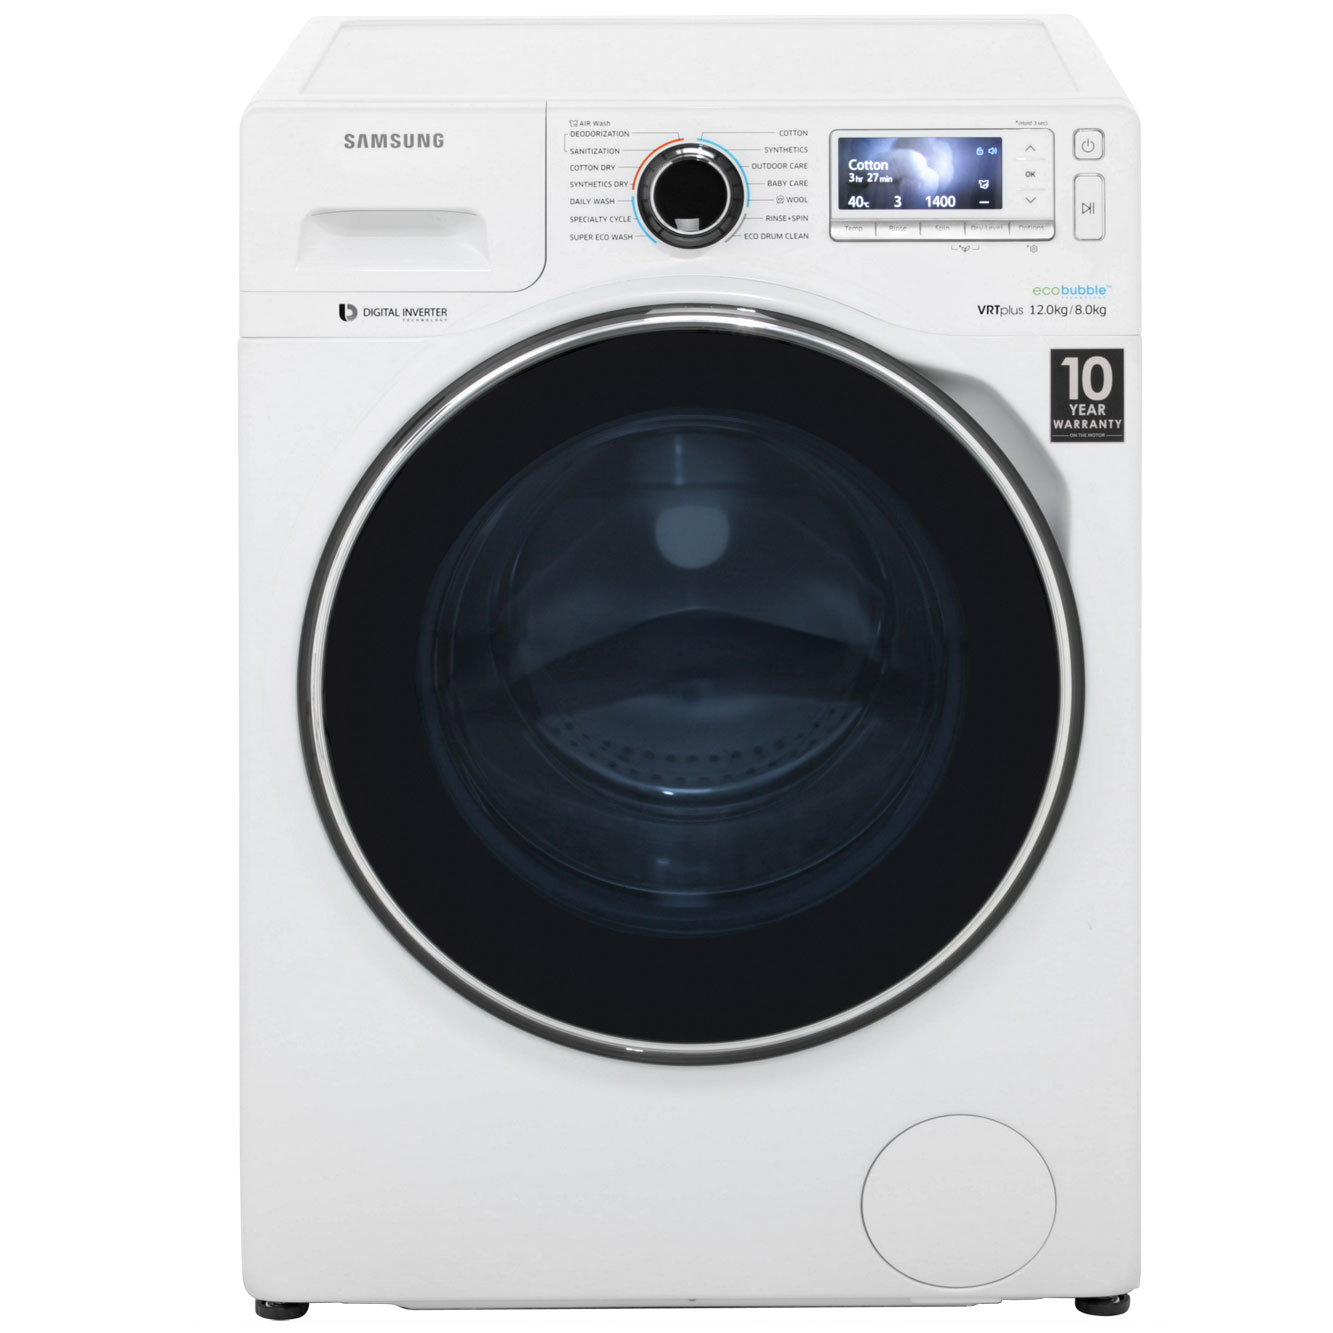 samsung washer dryer shop for cheap washer dryers and. Black Bedroom Furniture Sets. Home Design Ideas